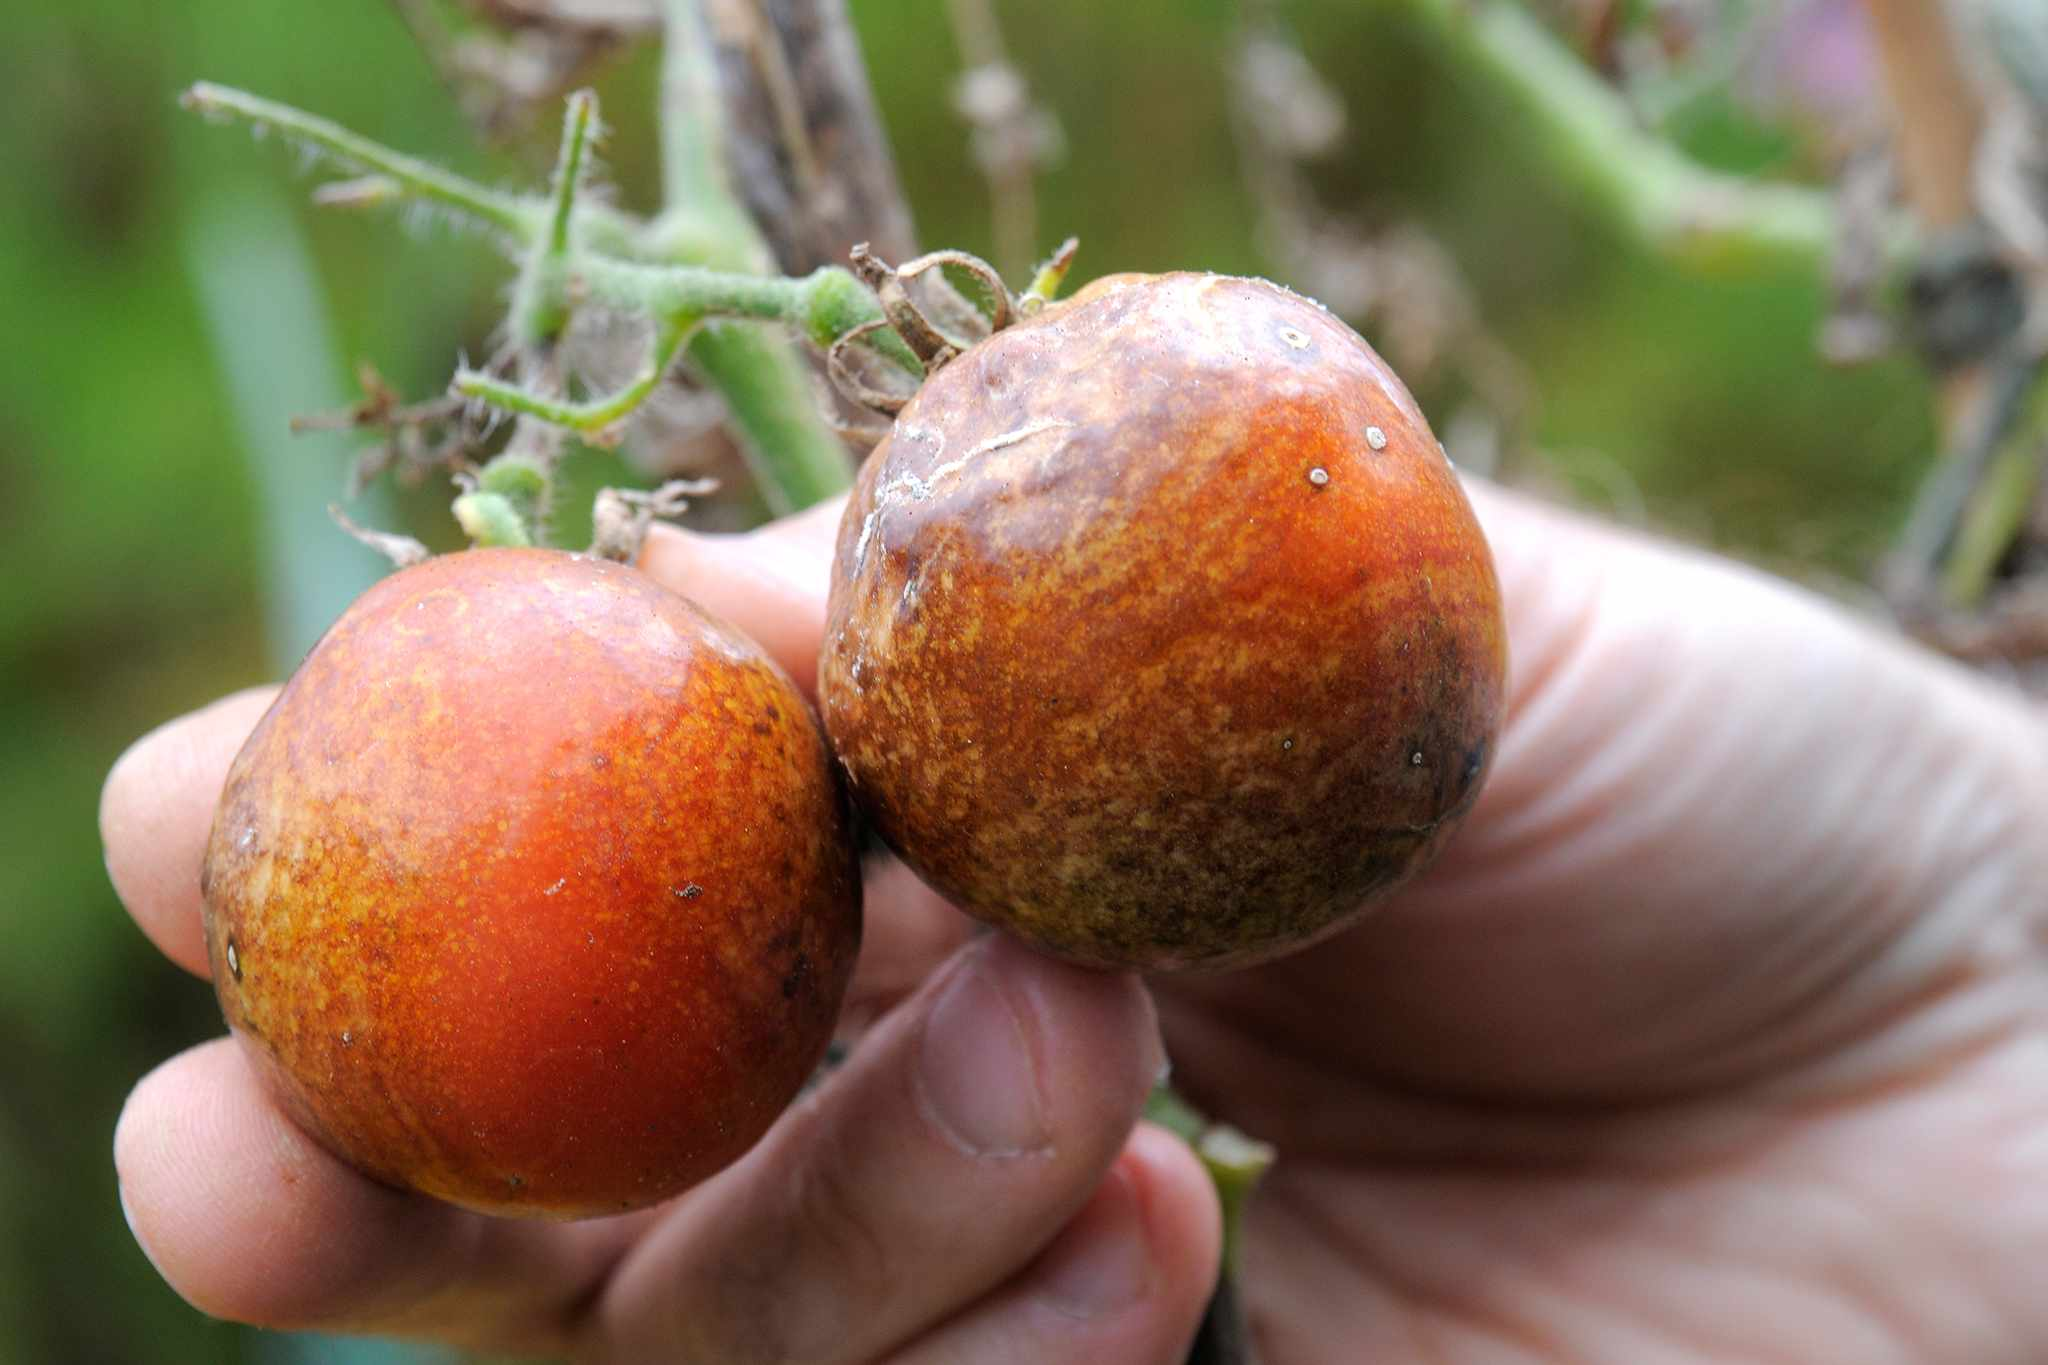 Tomatoes affected by tomato blight